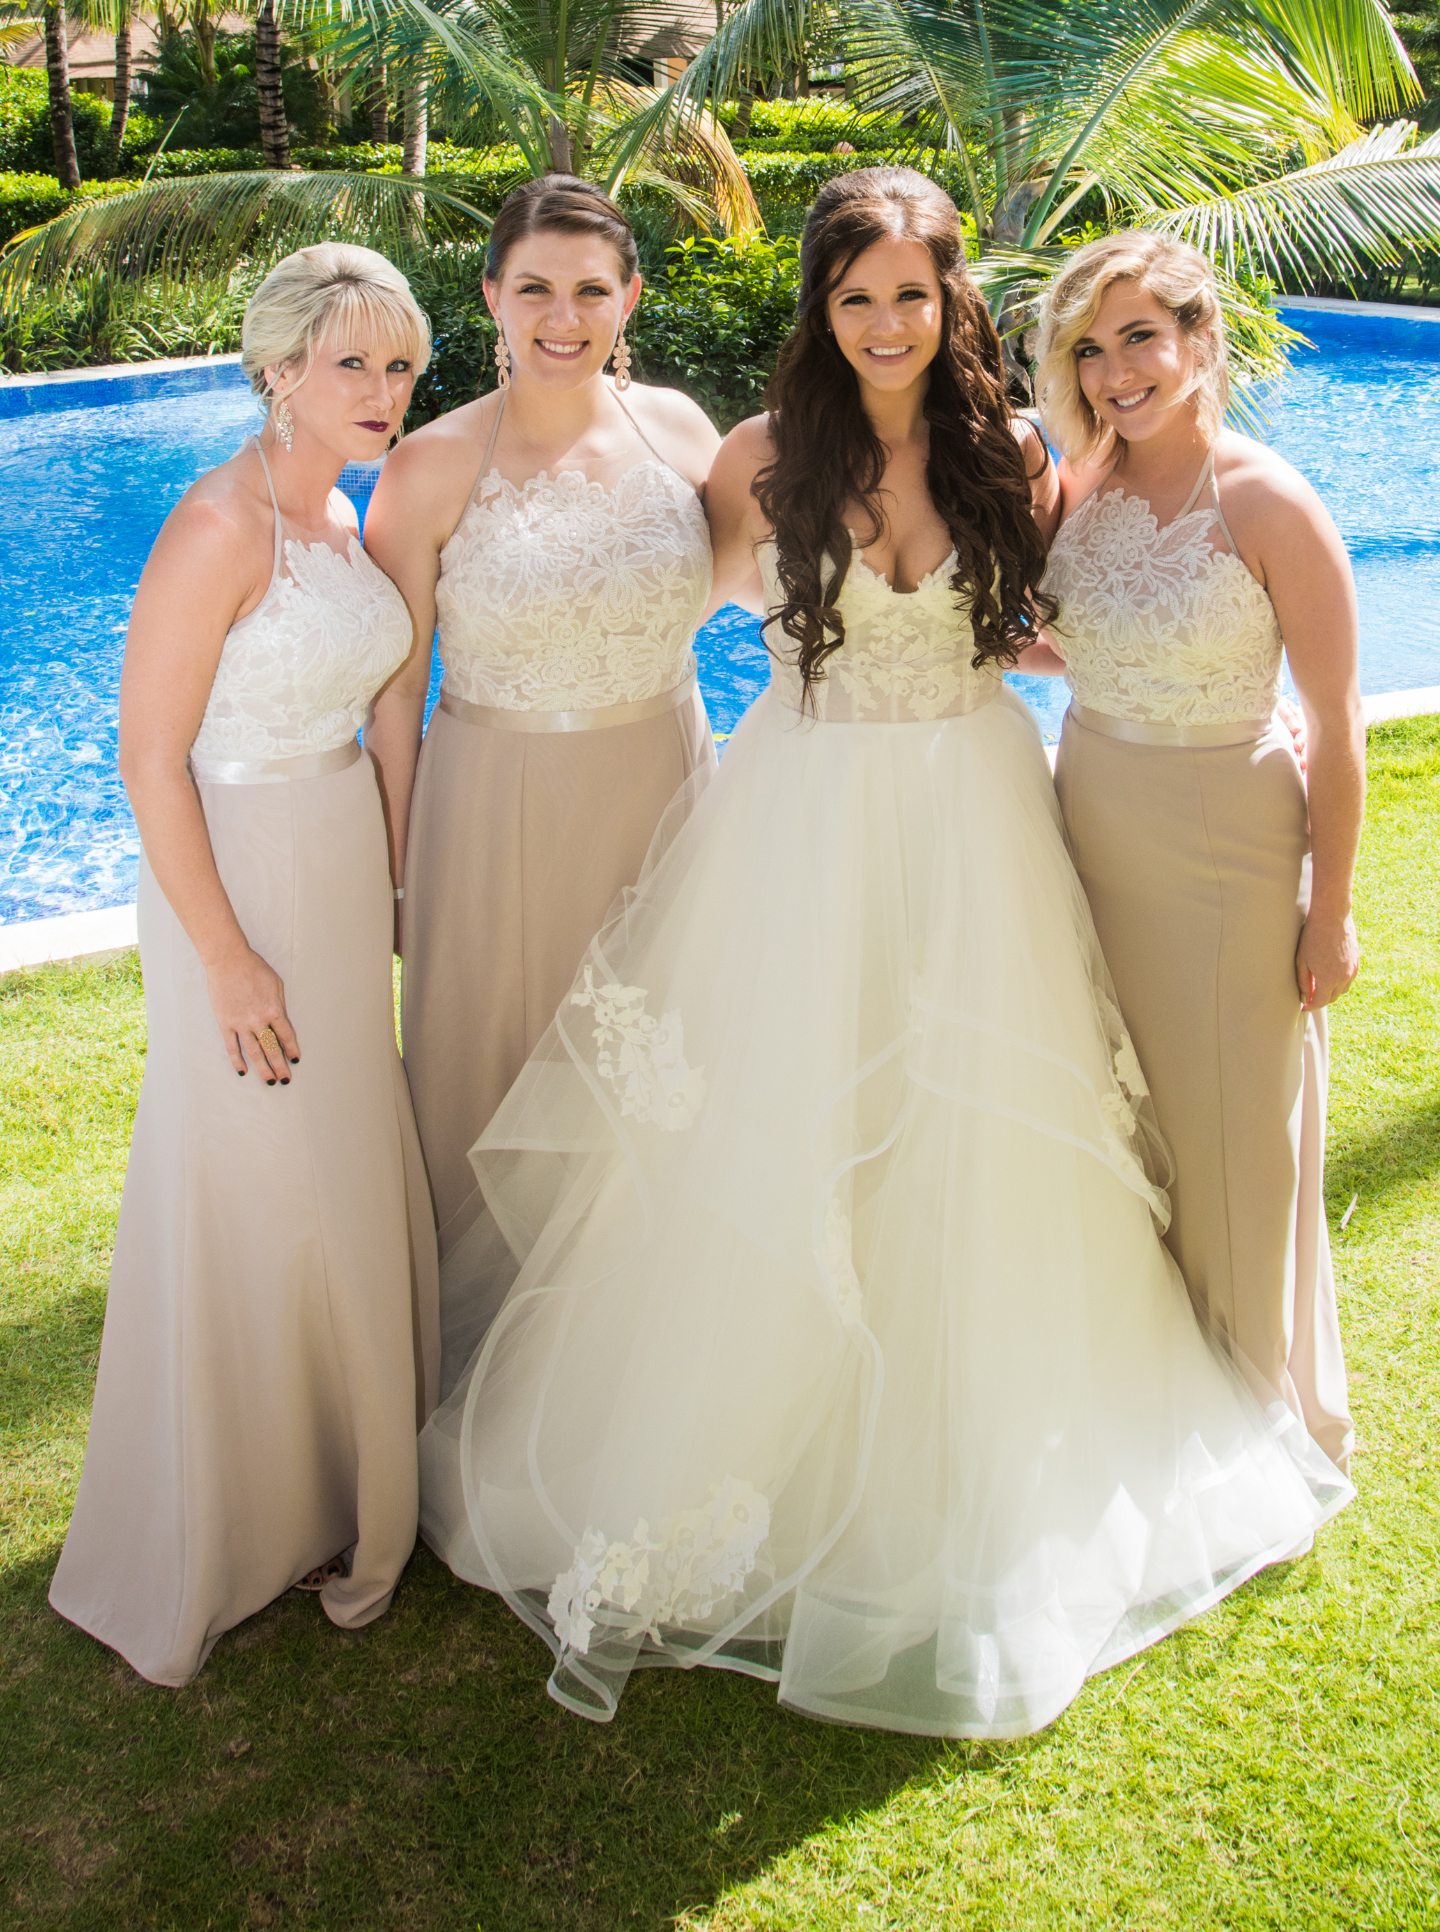 Ivory Lace Bodice Halter Bridesmaid Dresses Nude Long Bridesmaid Dresses Max Dresses For Bridesmaid Apd2467